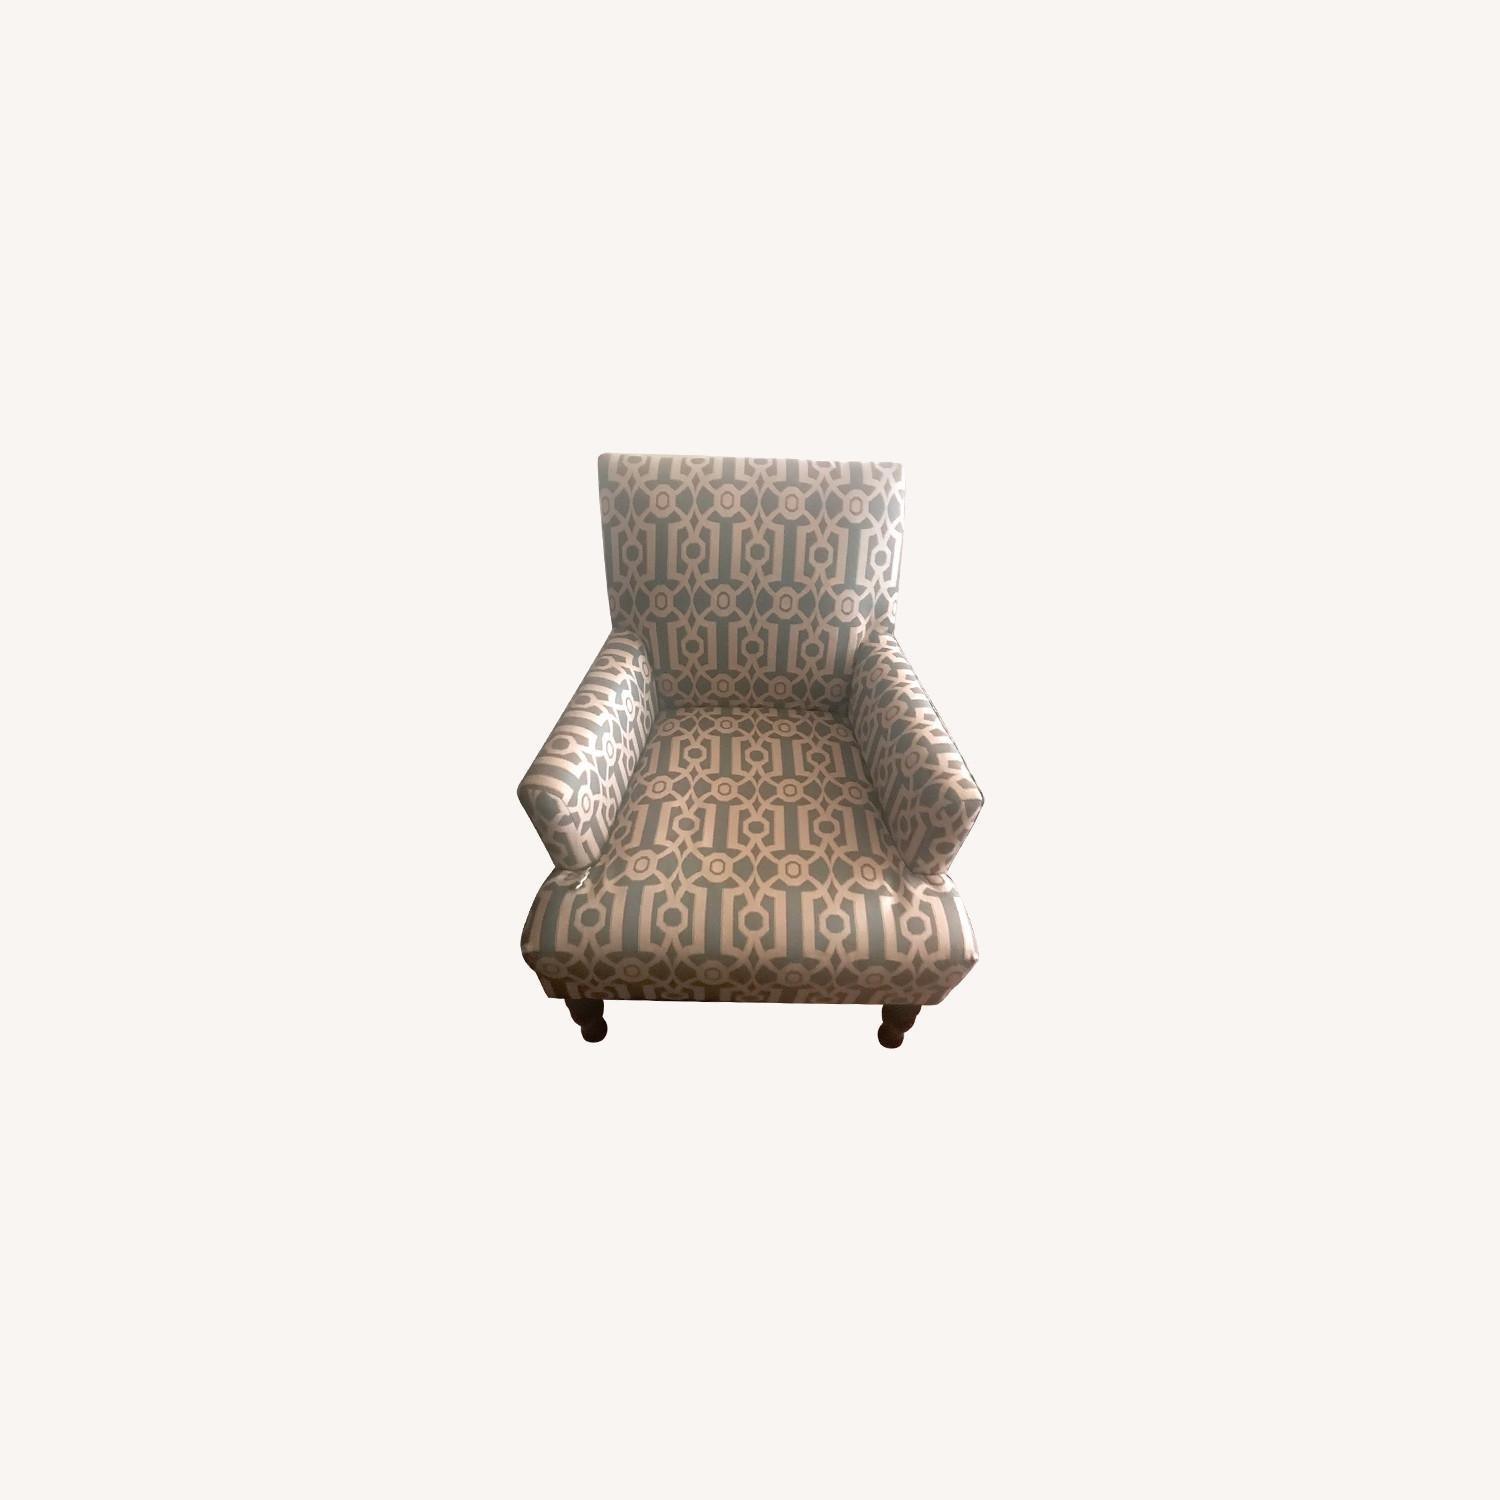 Pier 1 Imports Teal Modern Accent Chair - image-10